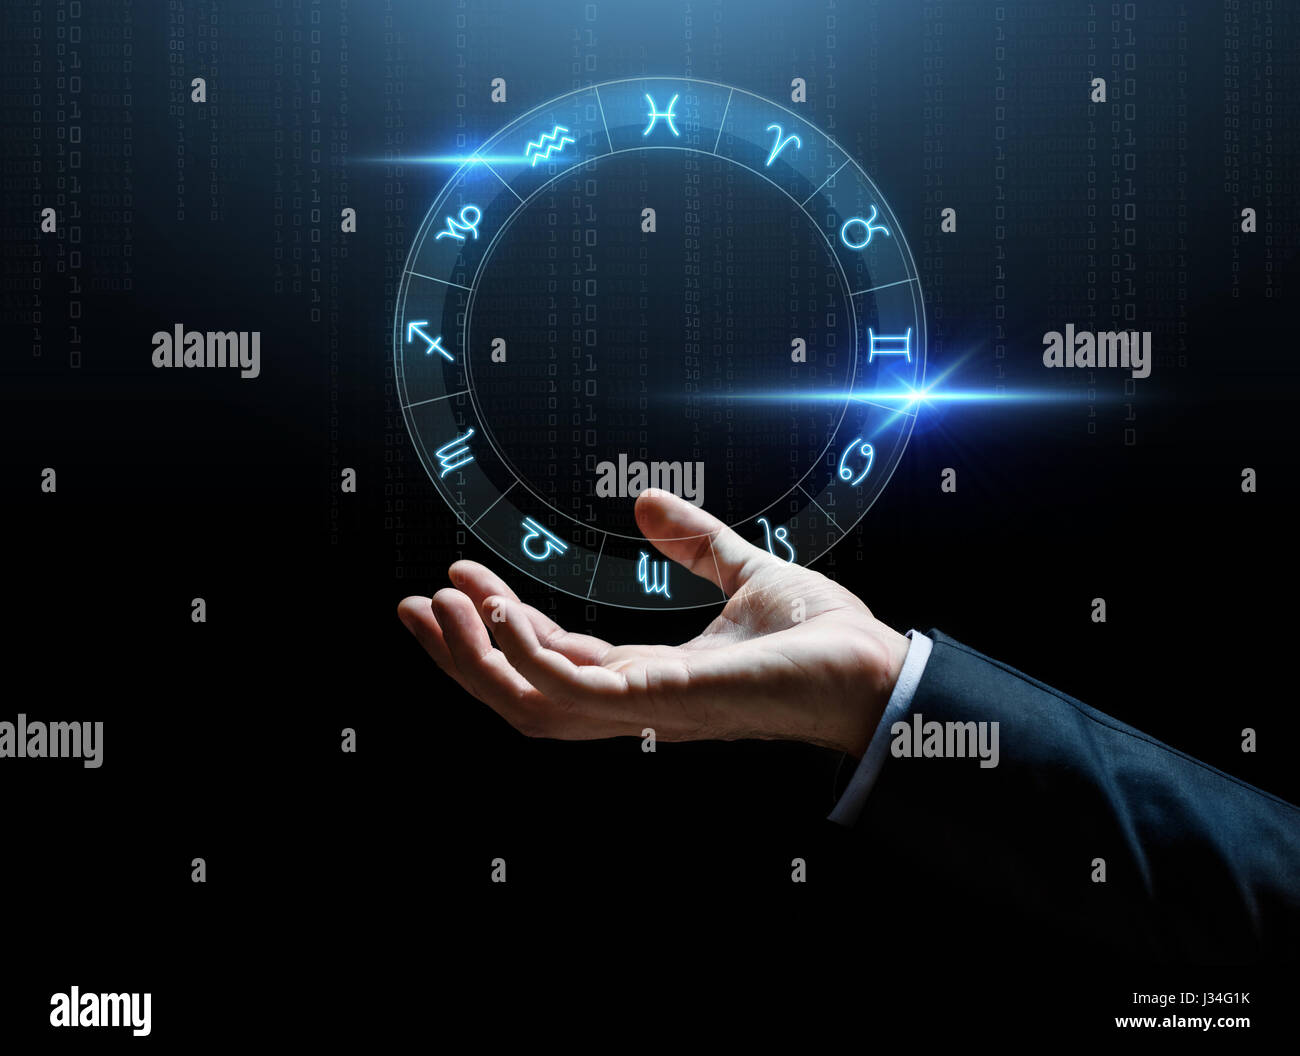 Horoscope diagram stock photos horoscope diagram stock images alamy close up of businessman hand with signs of zodiac stock image ccuart Gallery